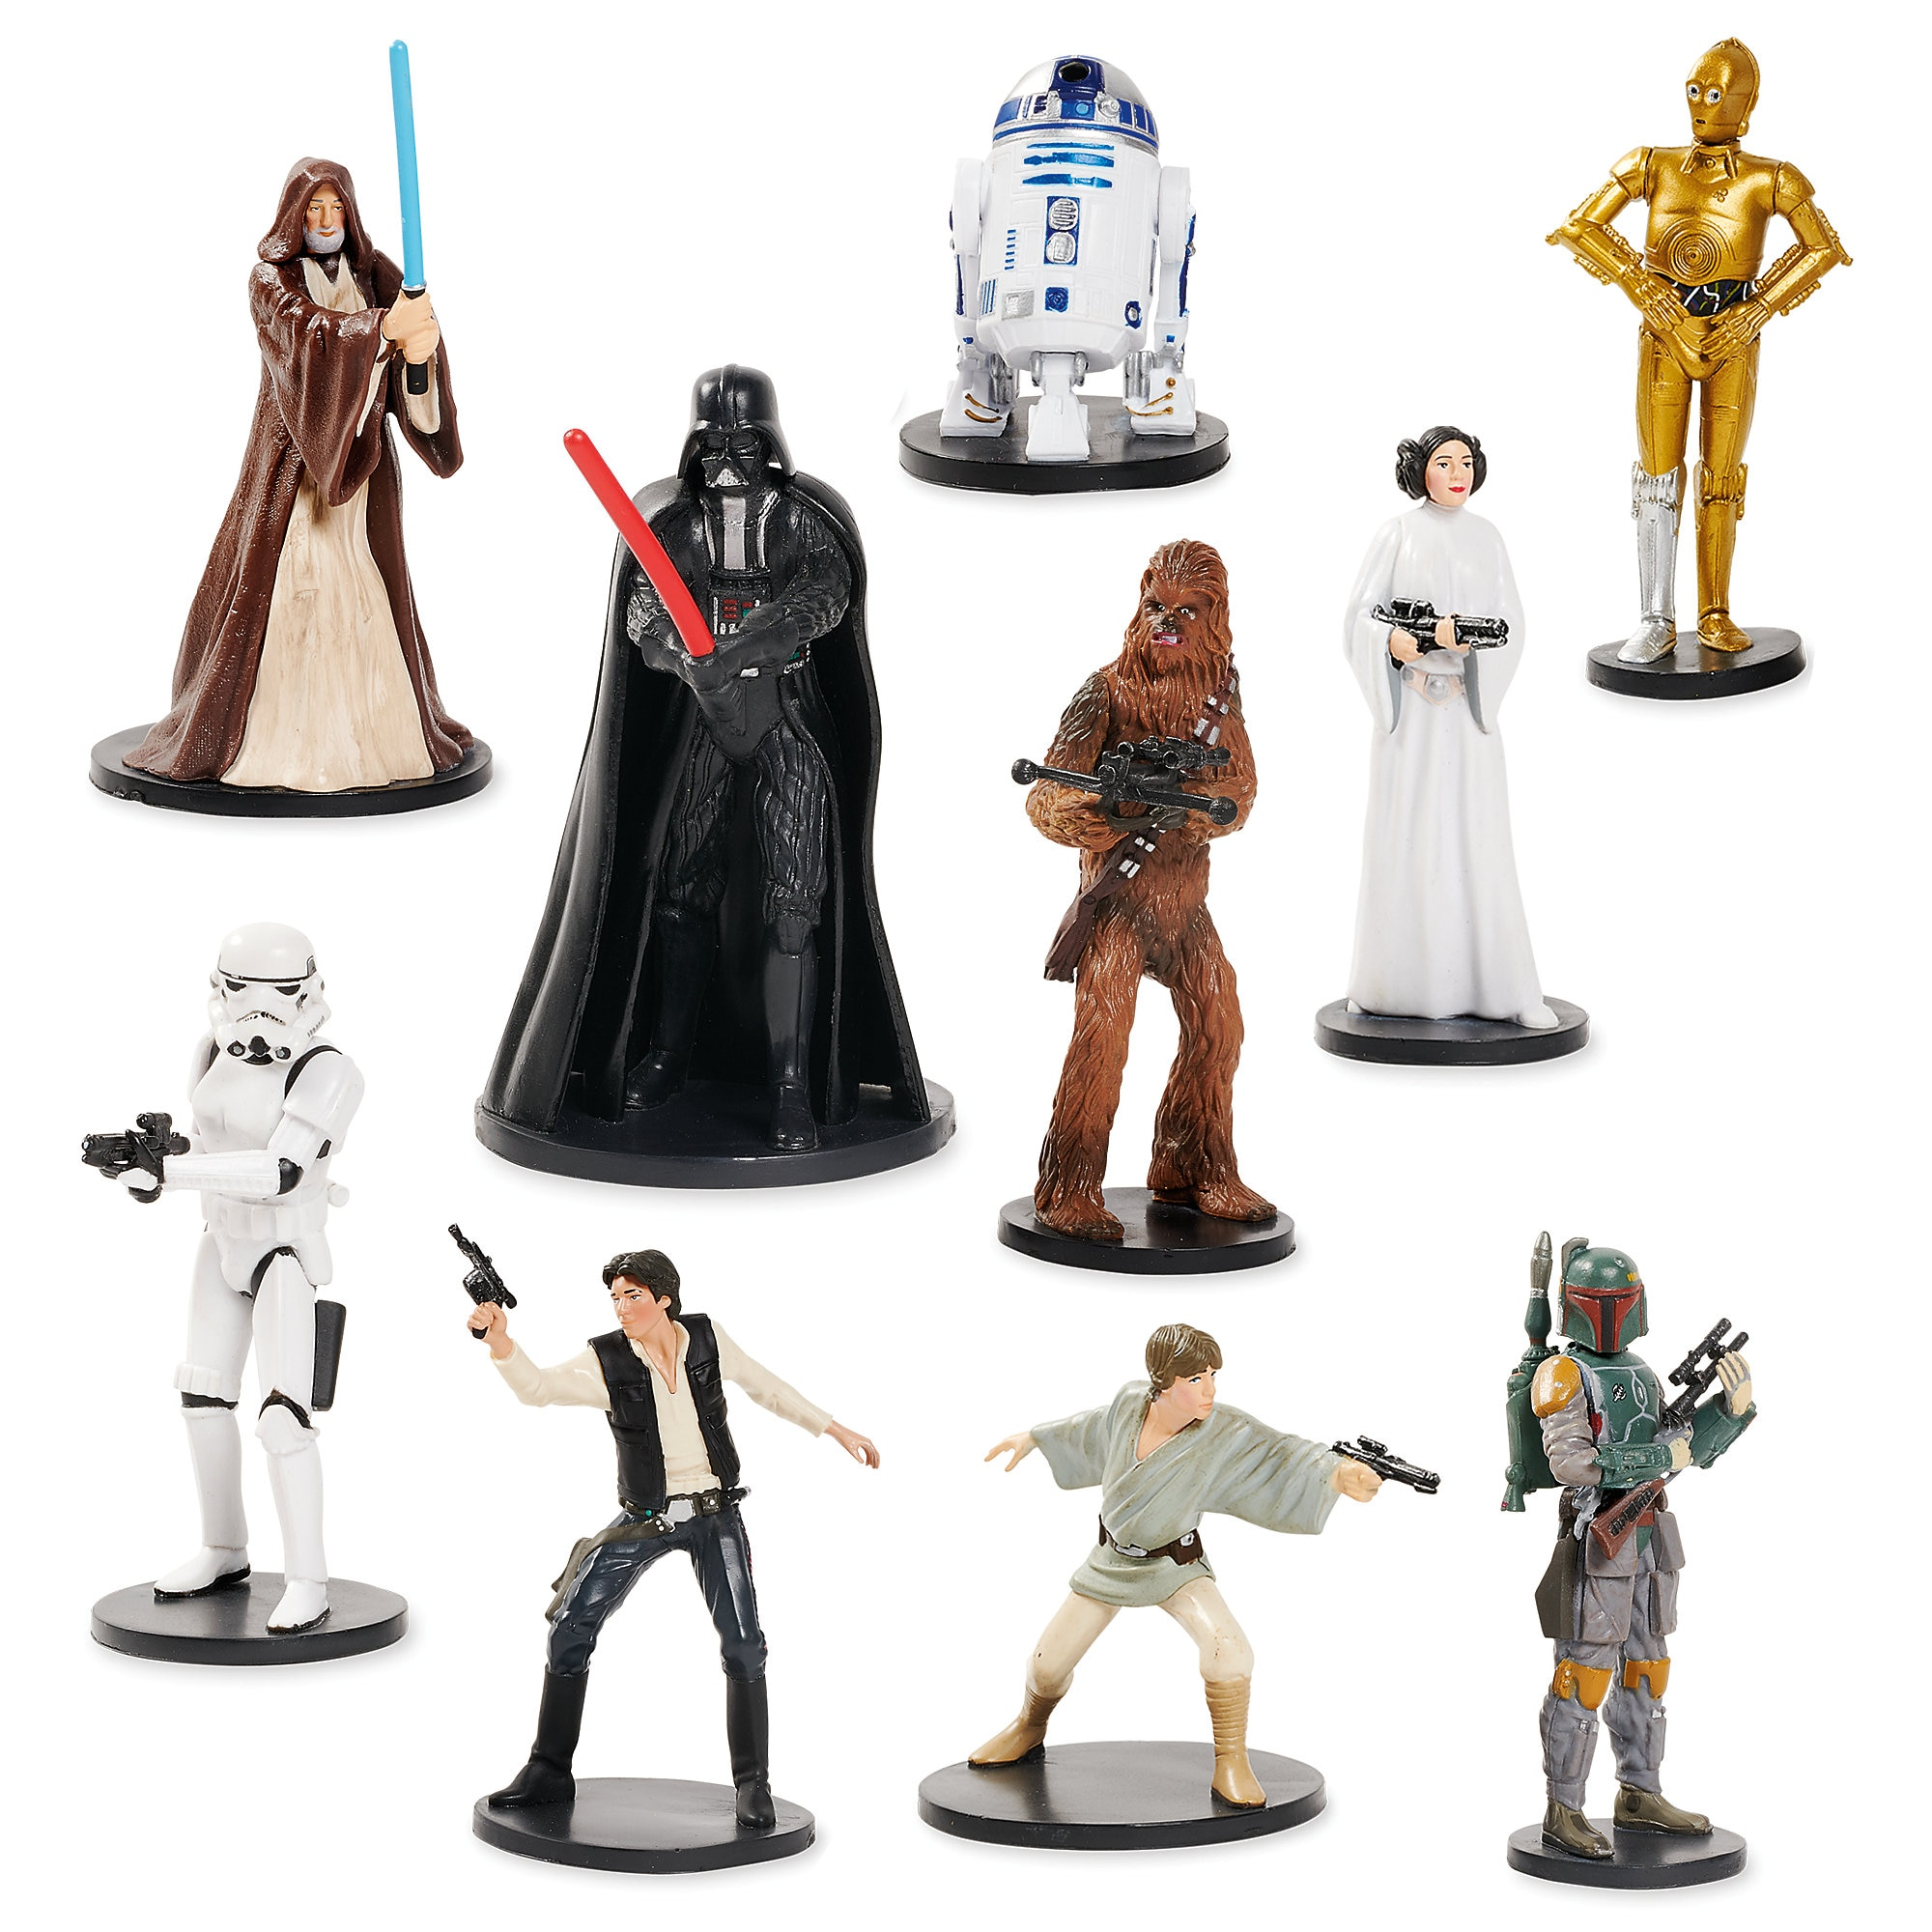 Star Wars: A New Hope Deluxe Figurine Set